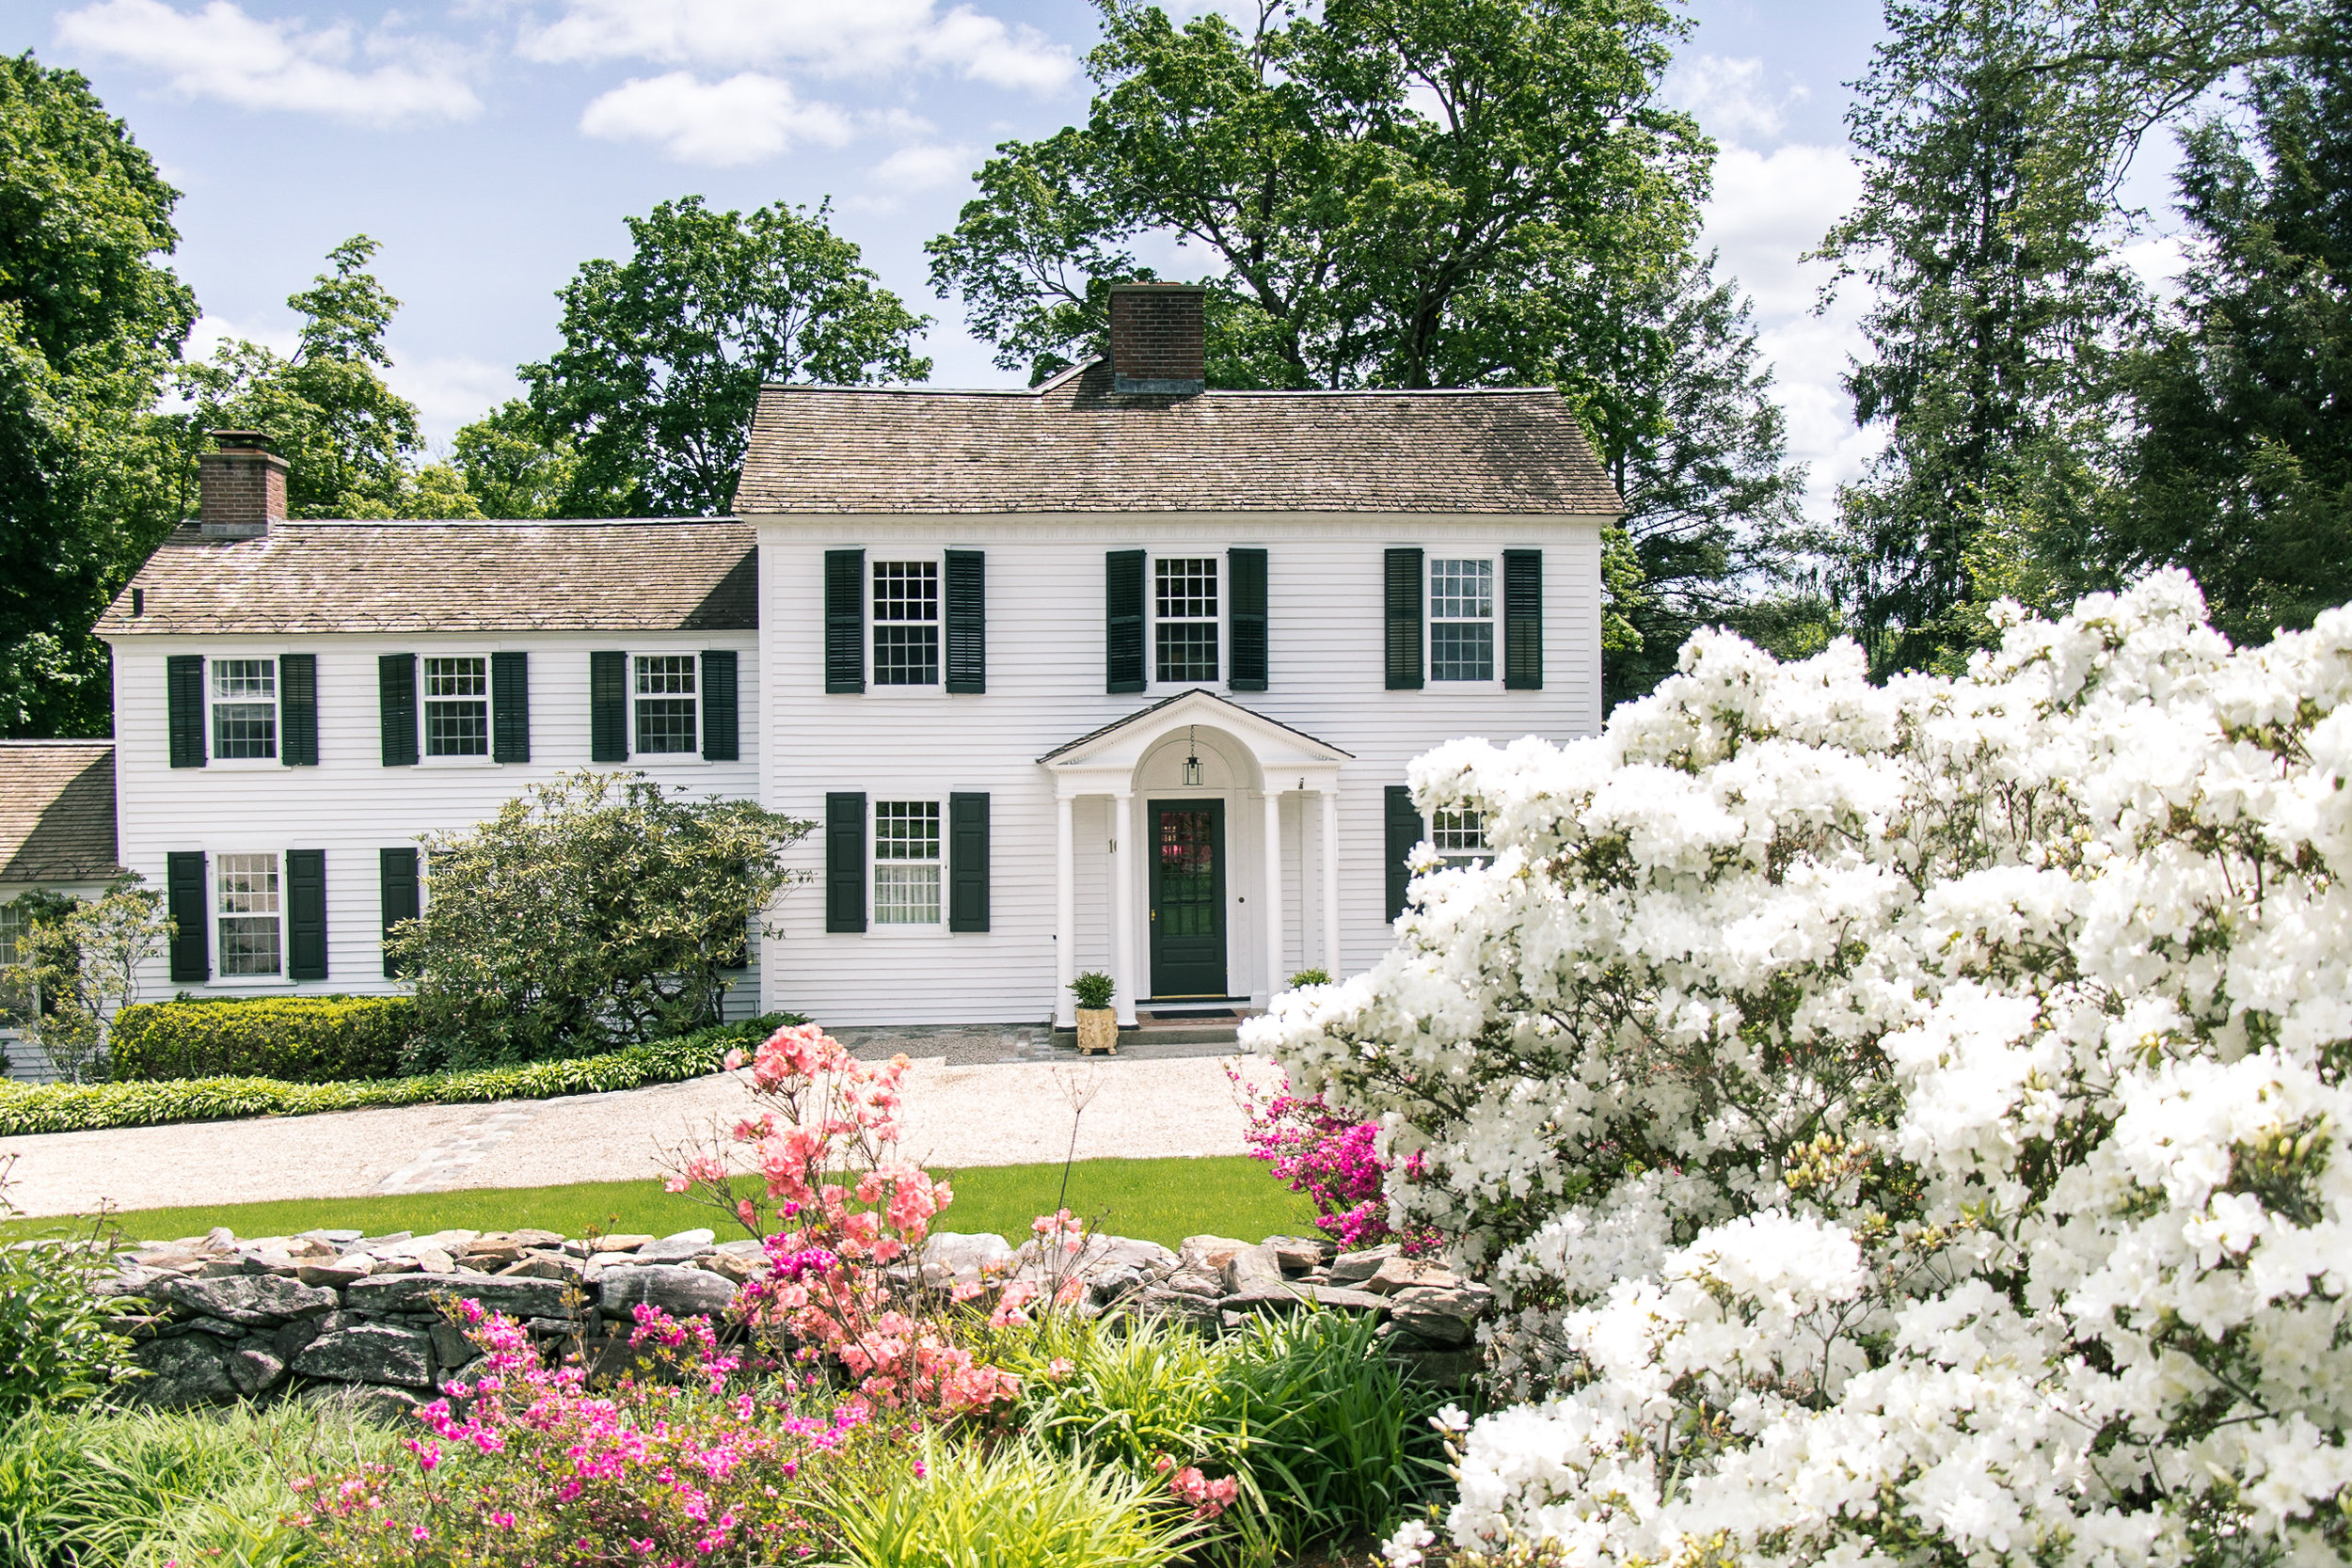 History preserved. A home near the Washington Green is an impeccably maintained example of the colonial architecture prevalent in the area.